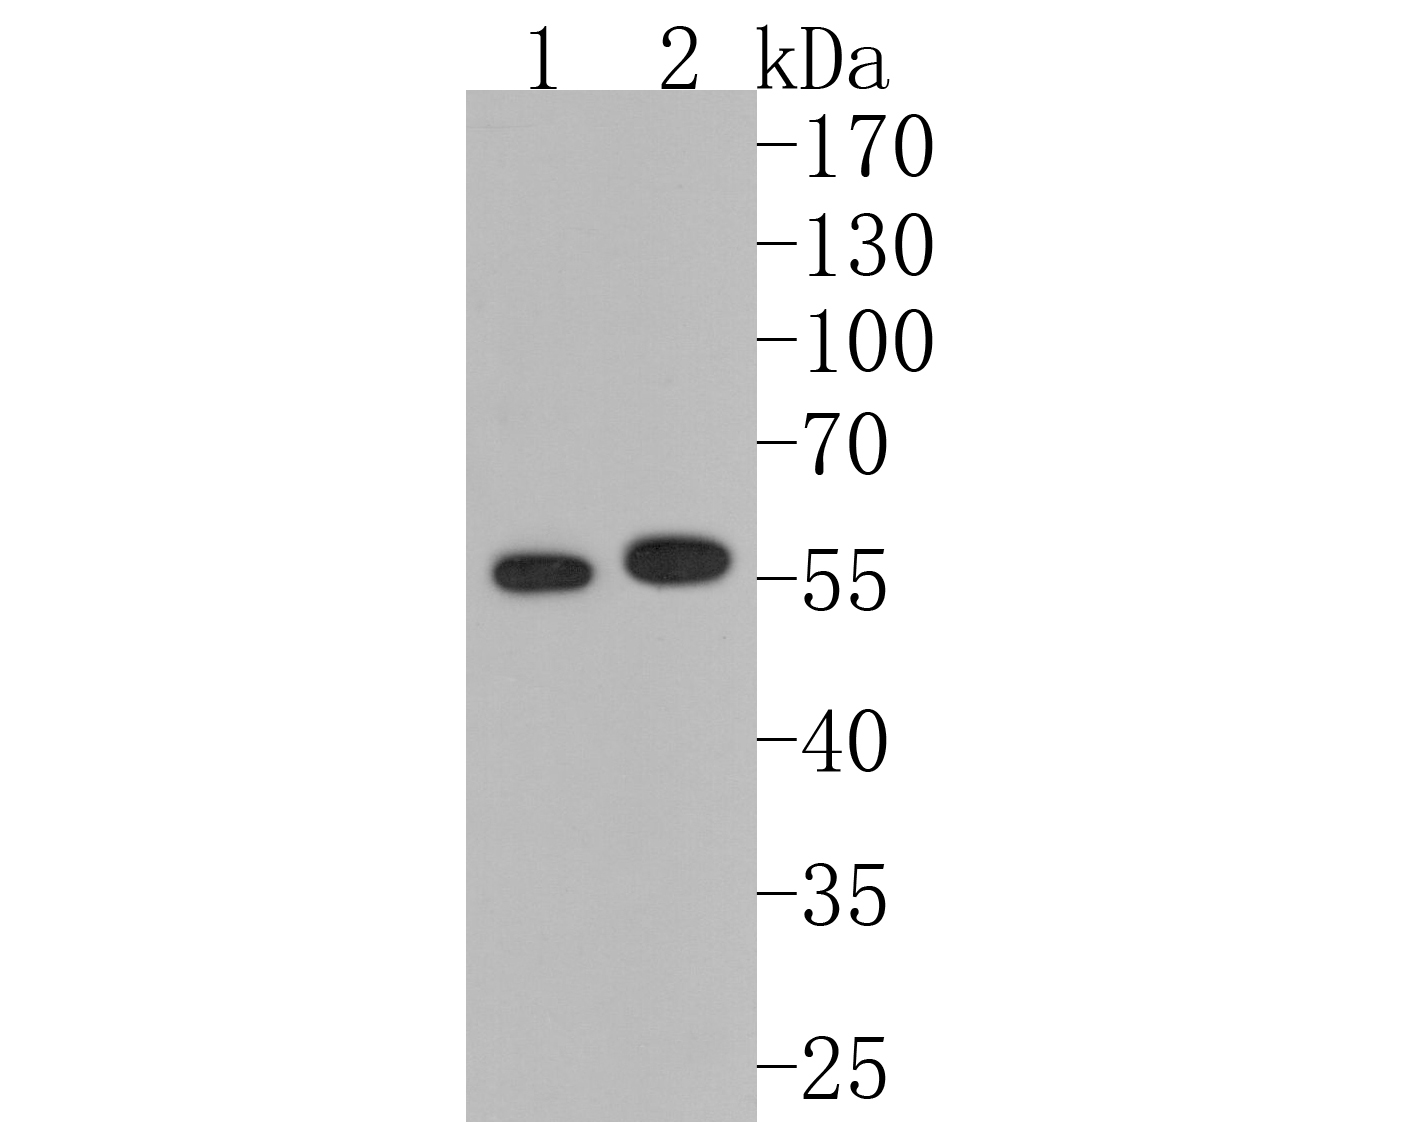 Western blot analysis of MMP13 on different lysates. Proteins were transferred to a PVDF membrane and blocked with 5% BSA in PBS for 1 hour at room temperature. The primary antibody (ET1702-14, 1/500) was used in 5% BSA at room temperature for 2 hours. Goat Anti-Rabbit IgG - HRP Secondary Antibody (HA1001) at 1:5,000 dilution was used for 1 hour at room temperature.<br /> Positive control: <br /> Lane 1: SW480 cell lysate<br /> Lane 2: MCF-7 cell lysate